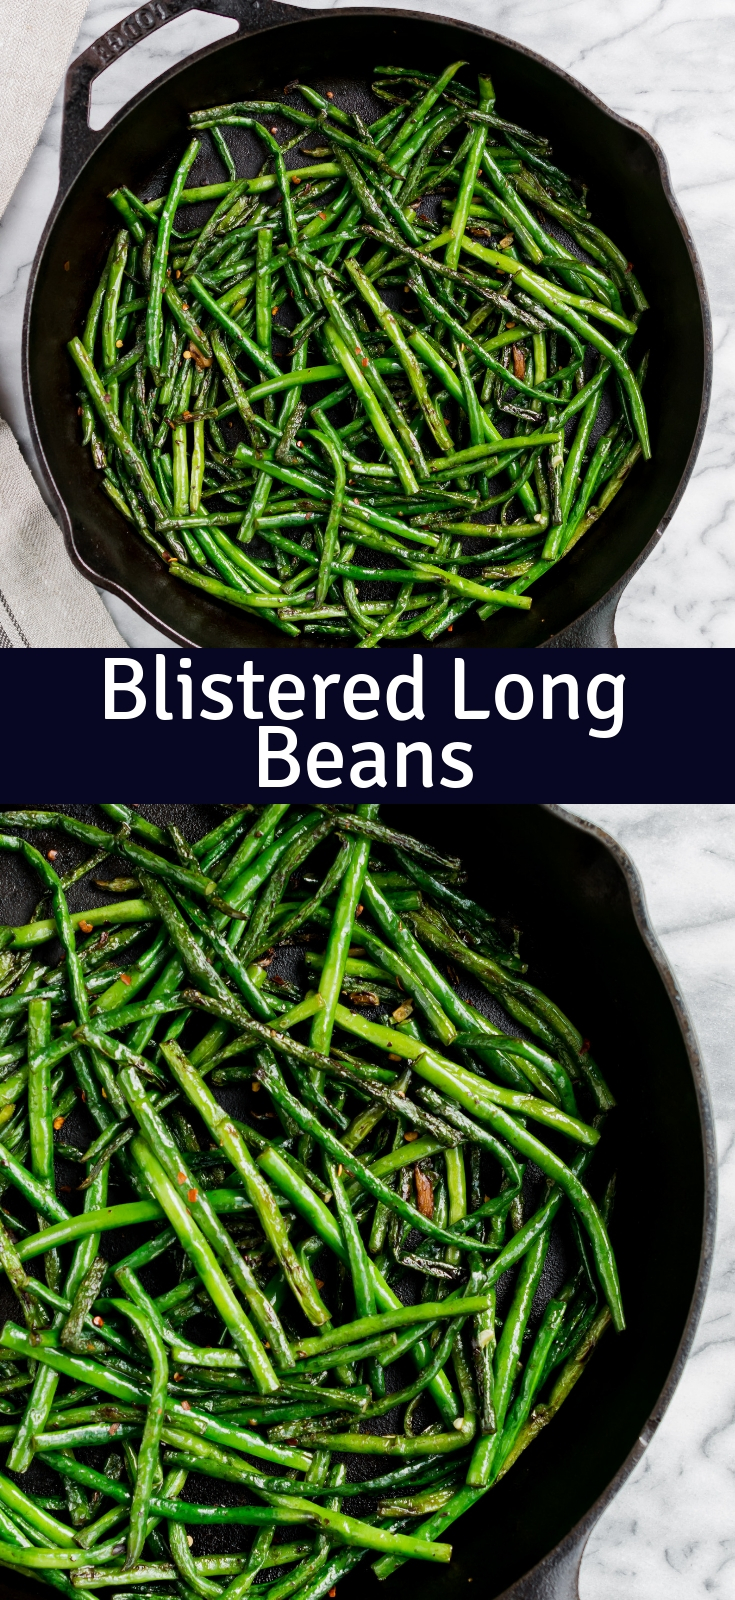 blistered Long beans